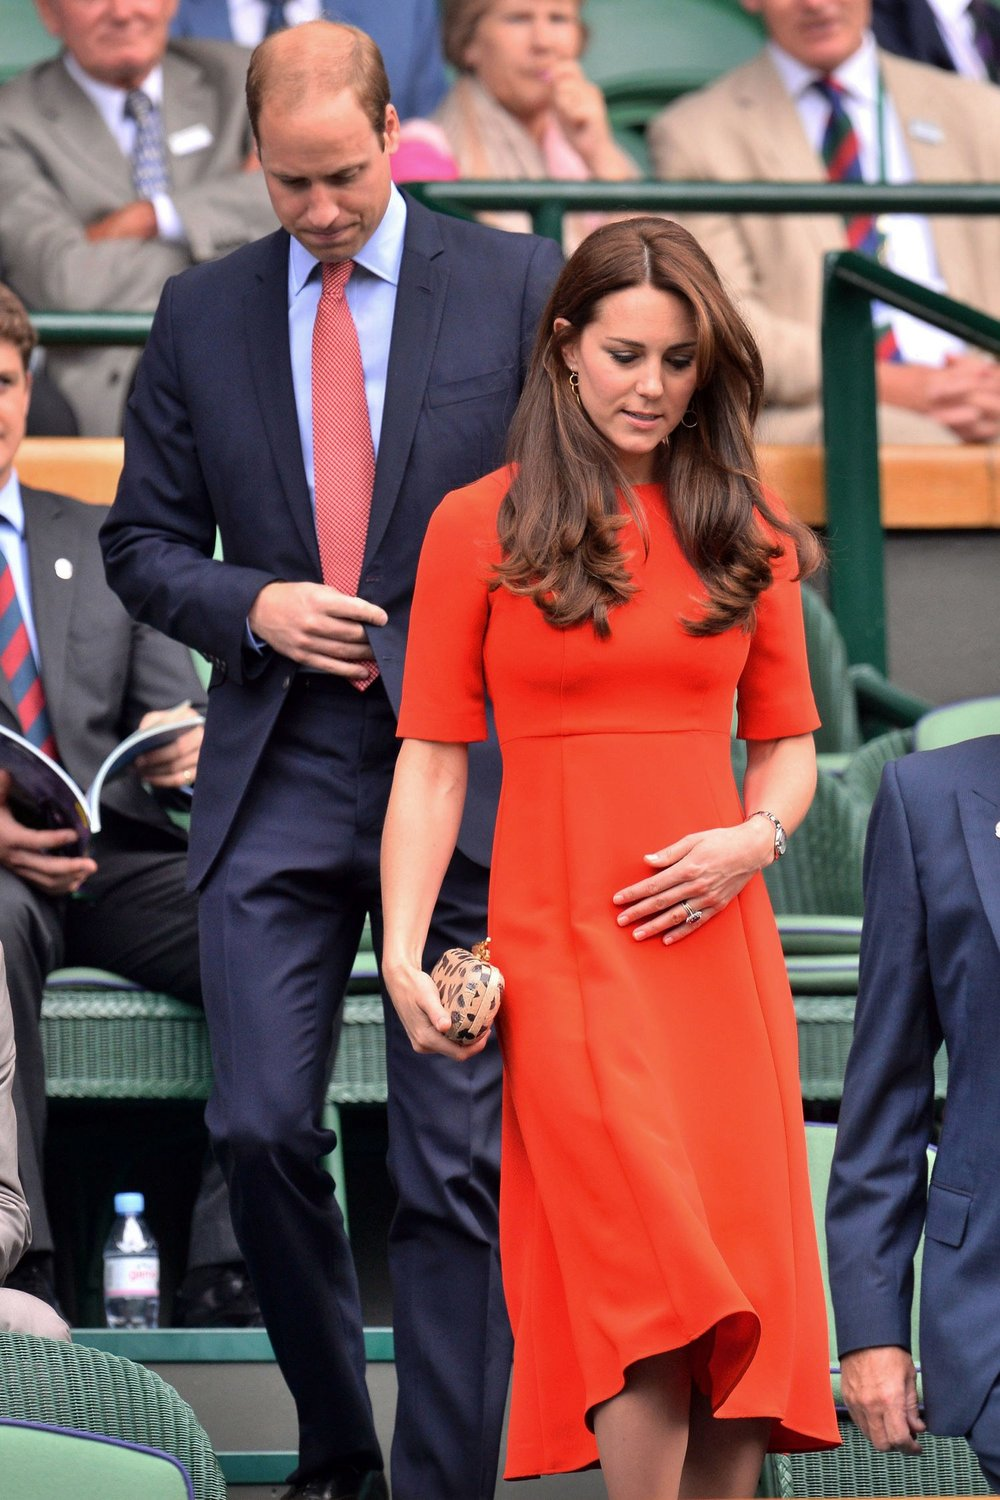 fashion-2015-07-kate-middleton-red-dress-wimbledon-2015-main.jpg